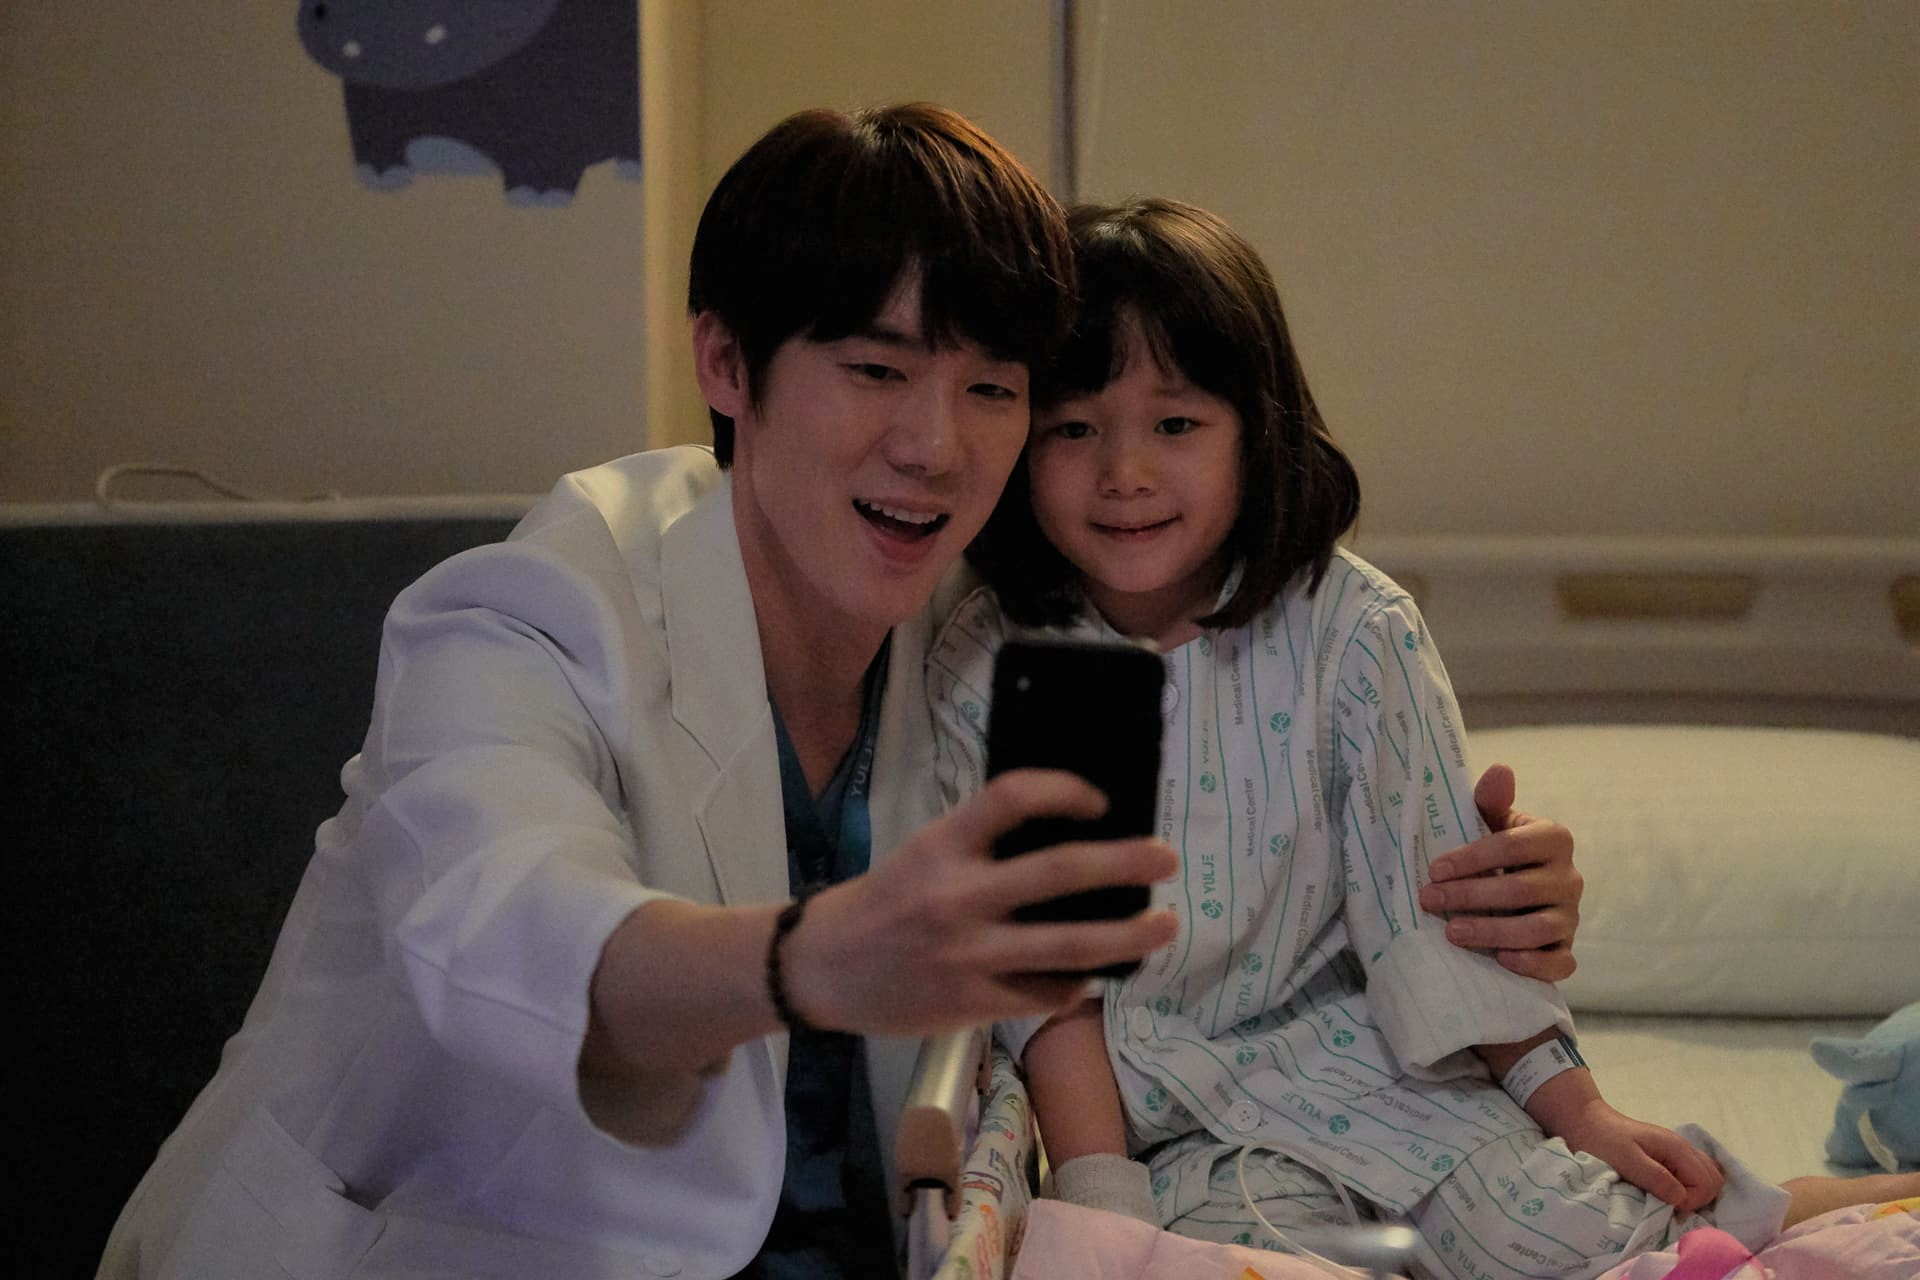 Things to look forward to in 'Hospital Playlist Season 2'